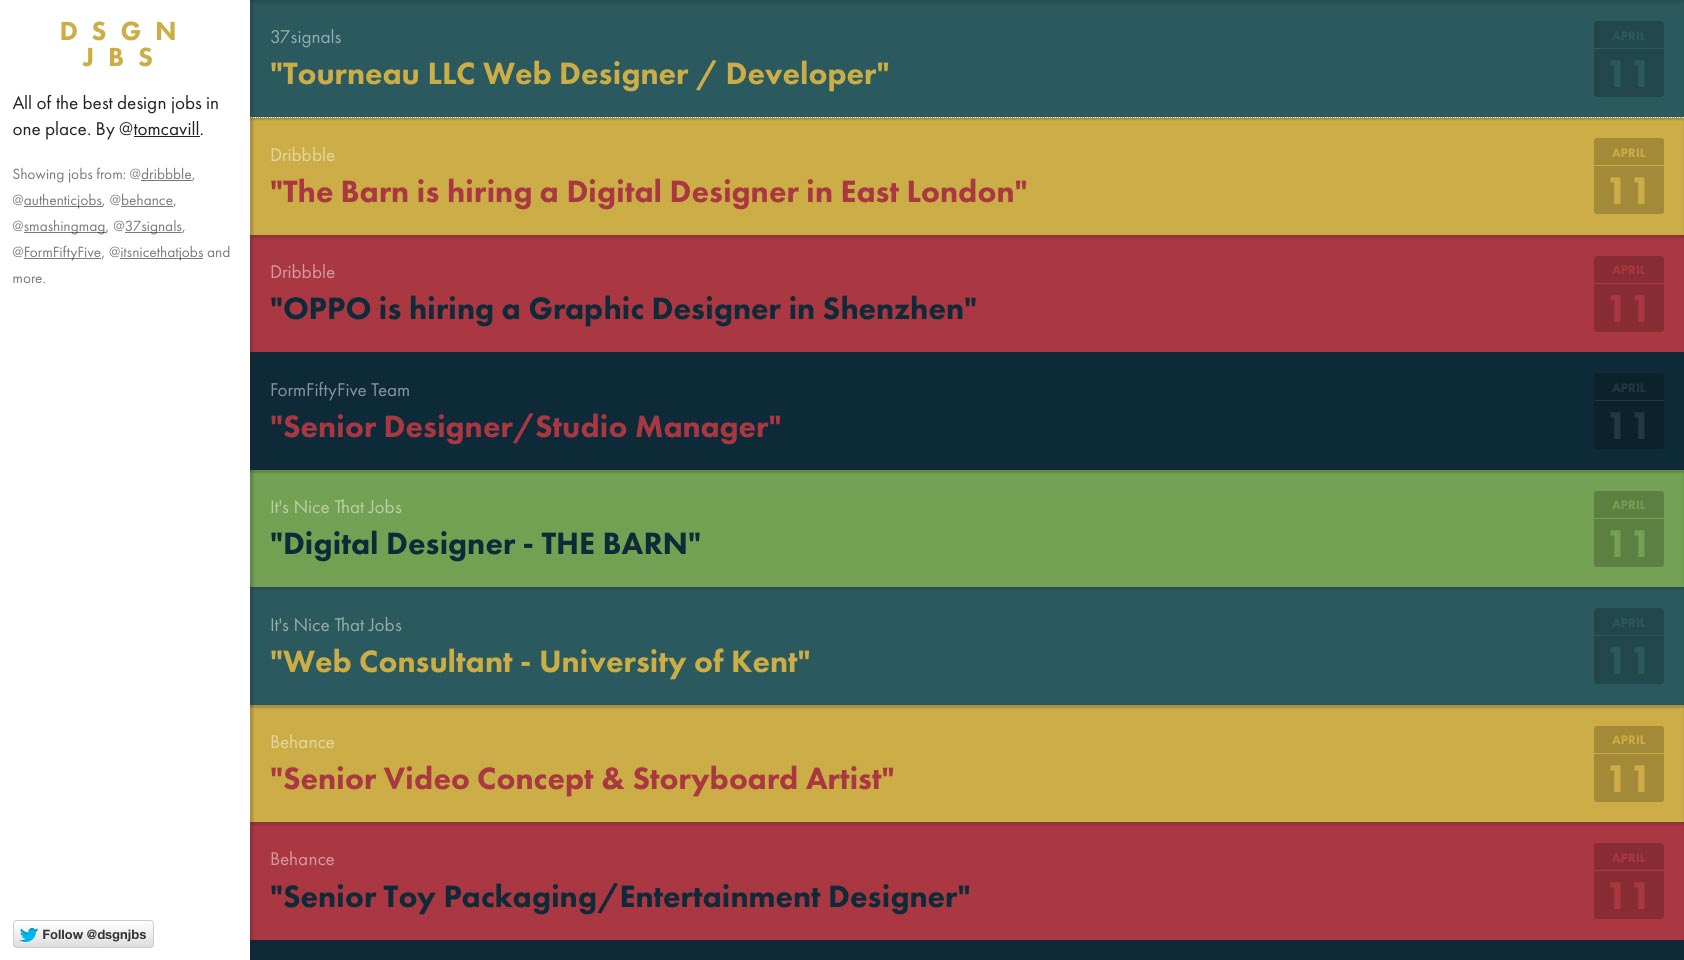 What's new for designers, April 2013